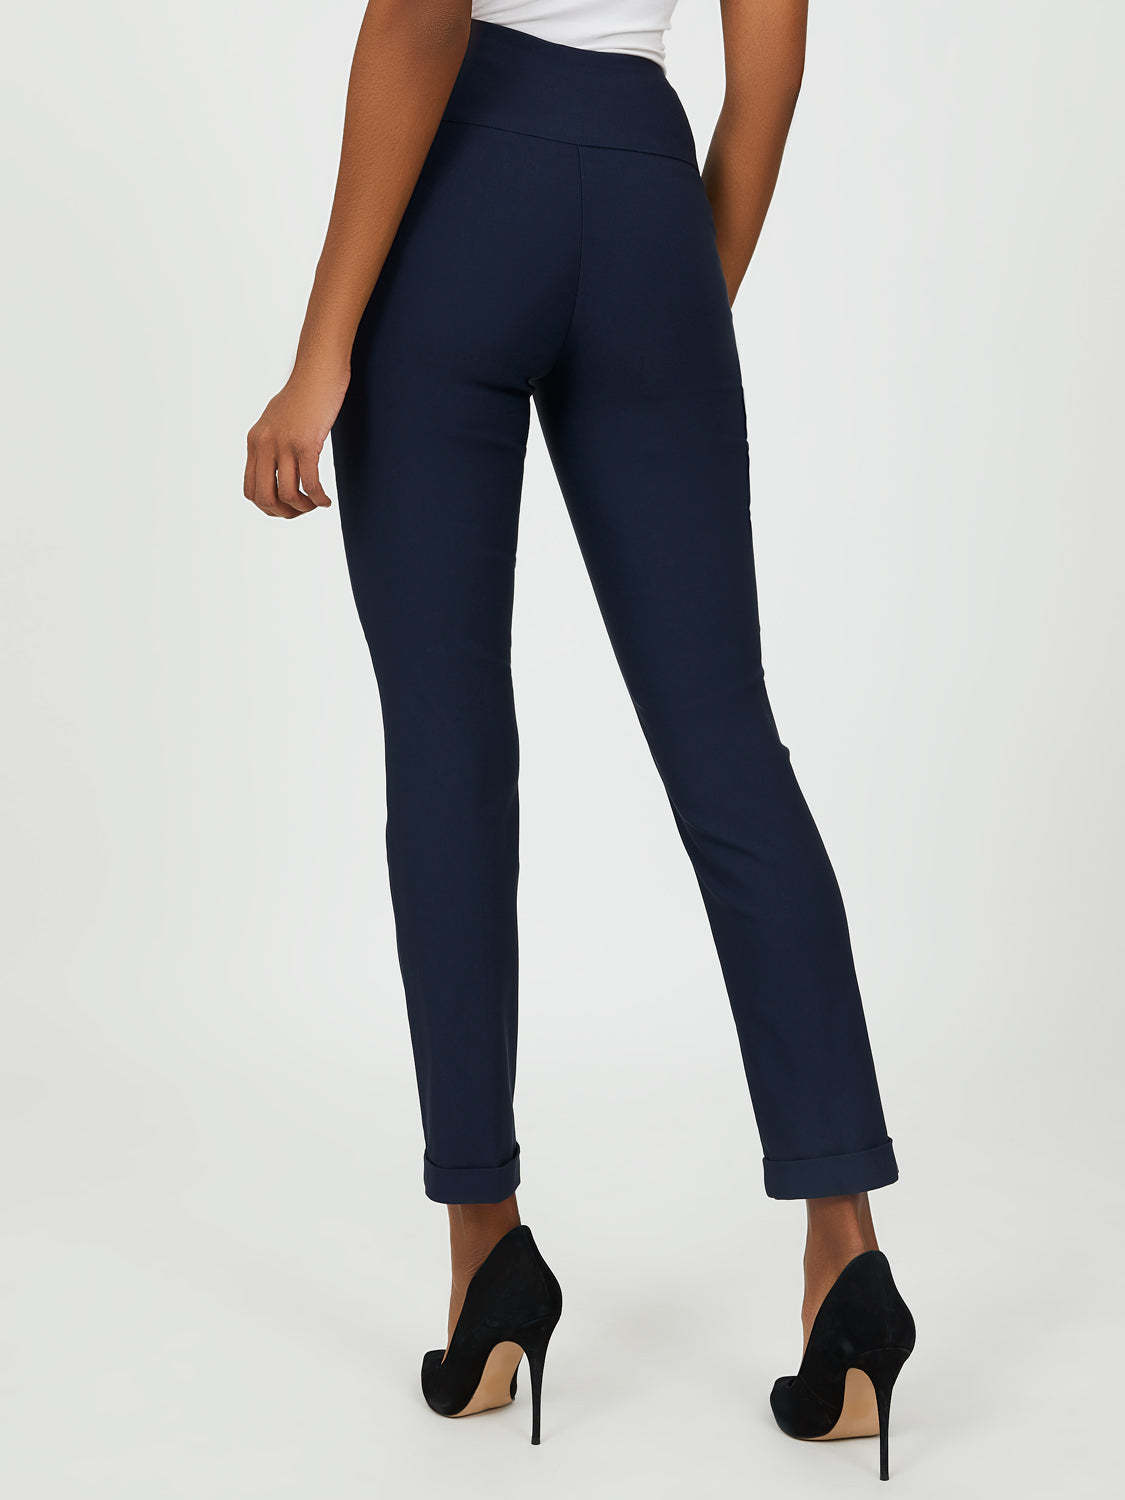 Slim-Fit Ankle Length Pant